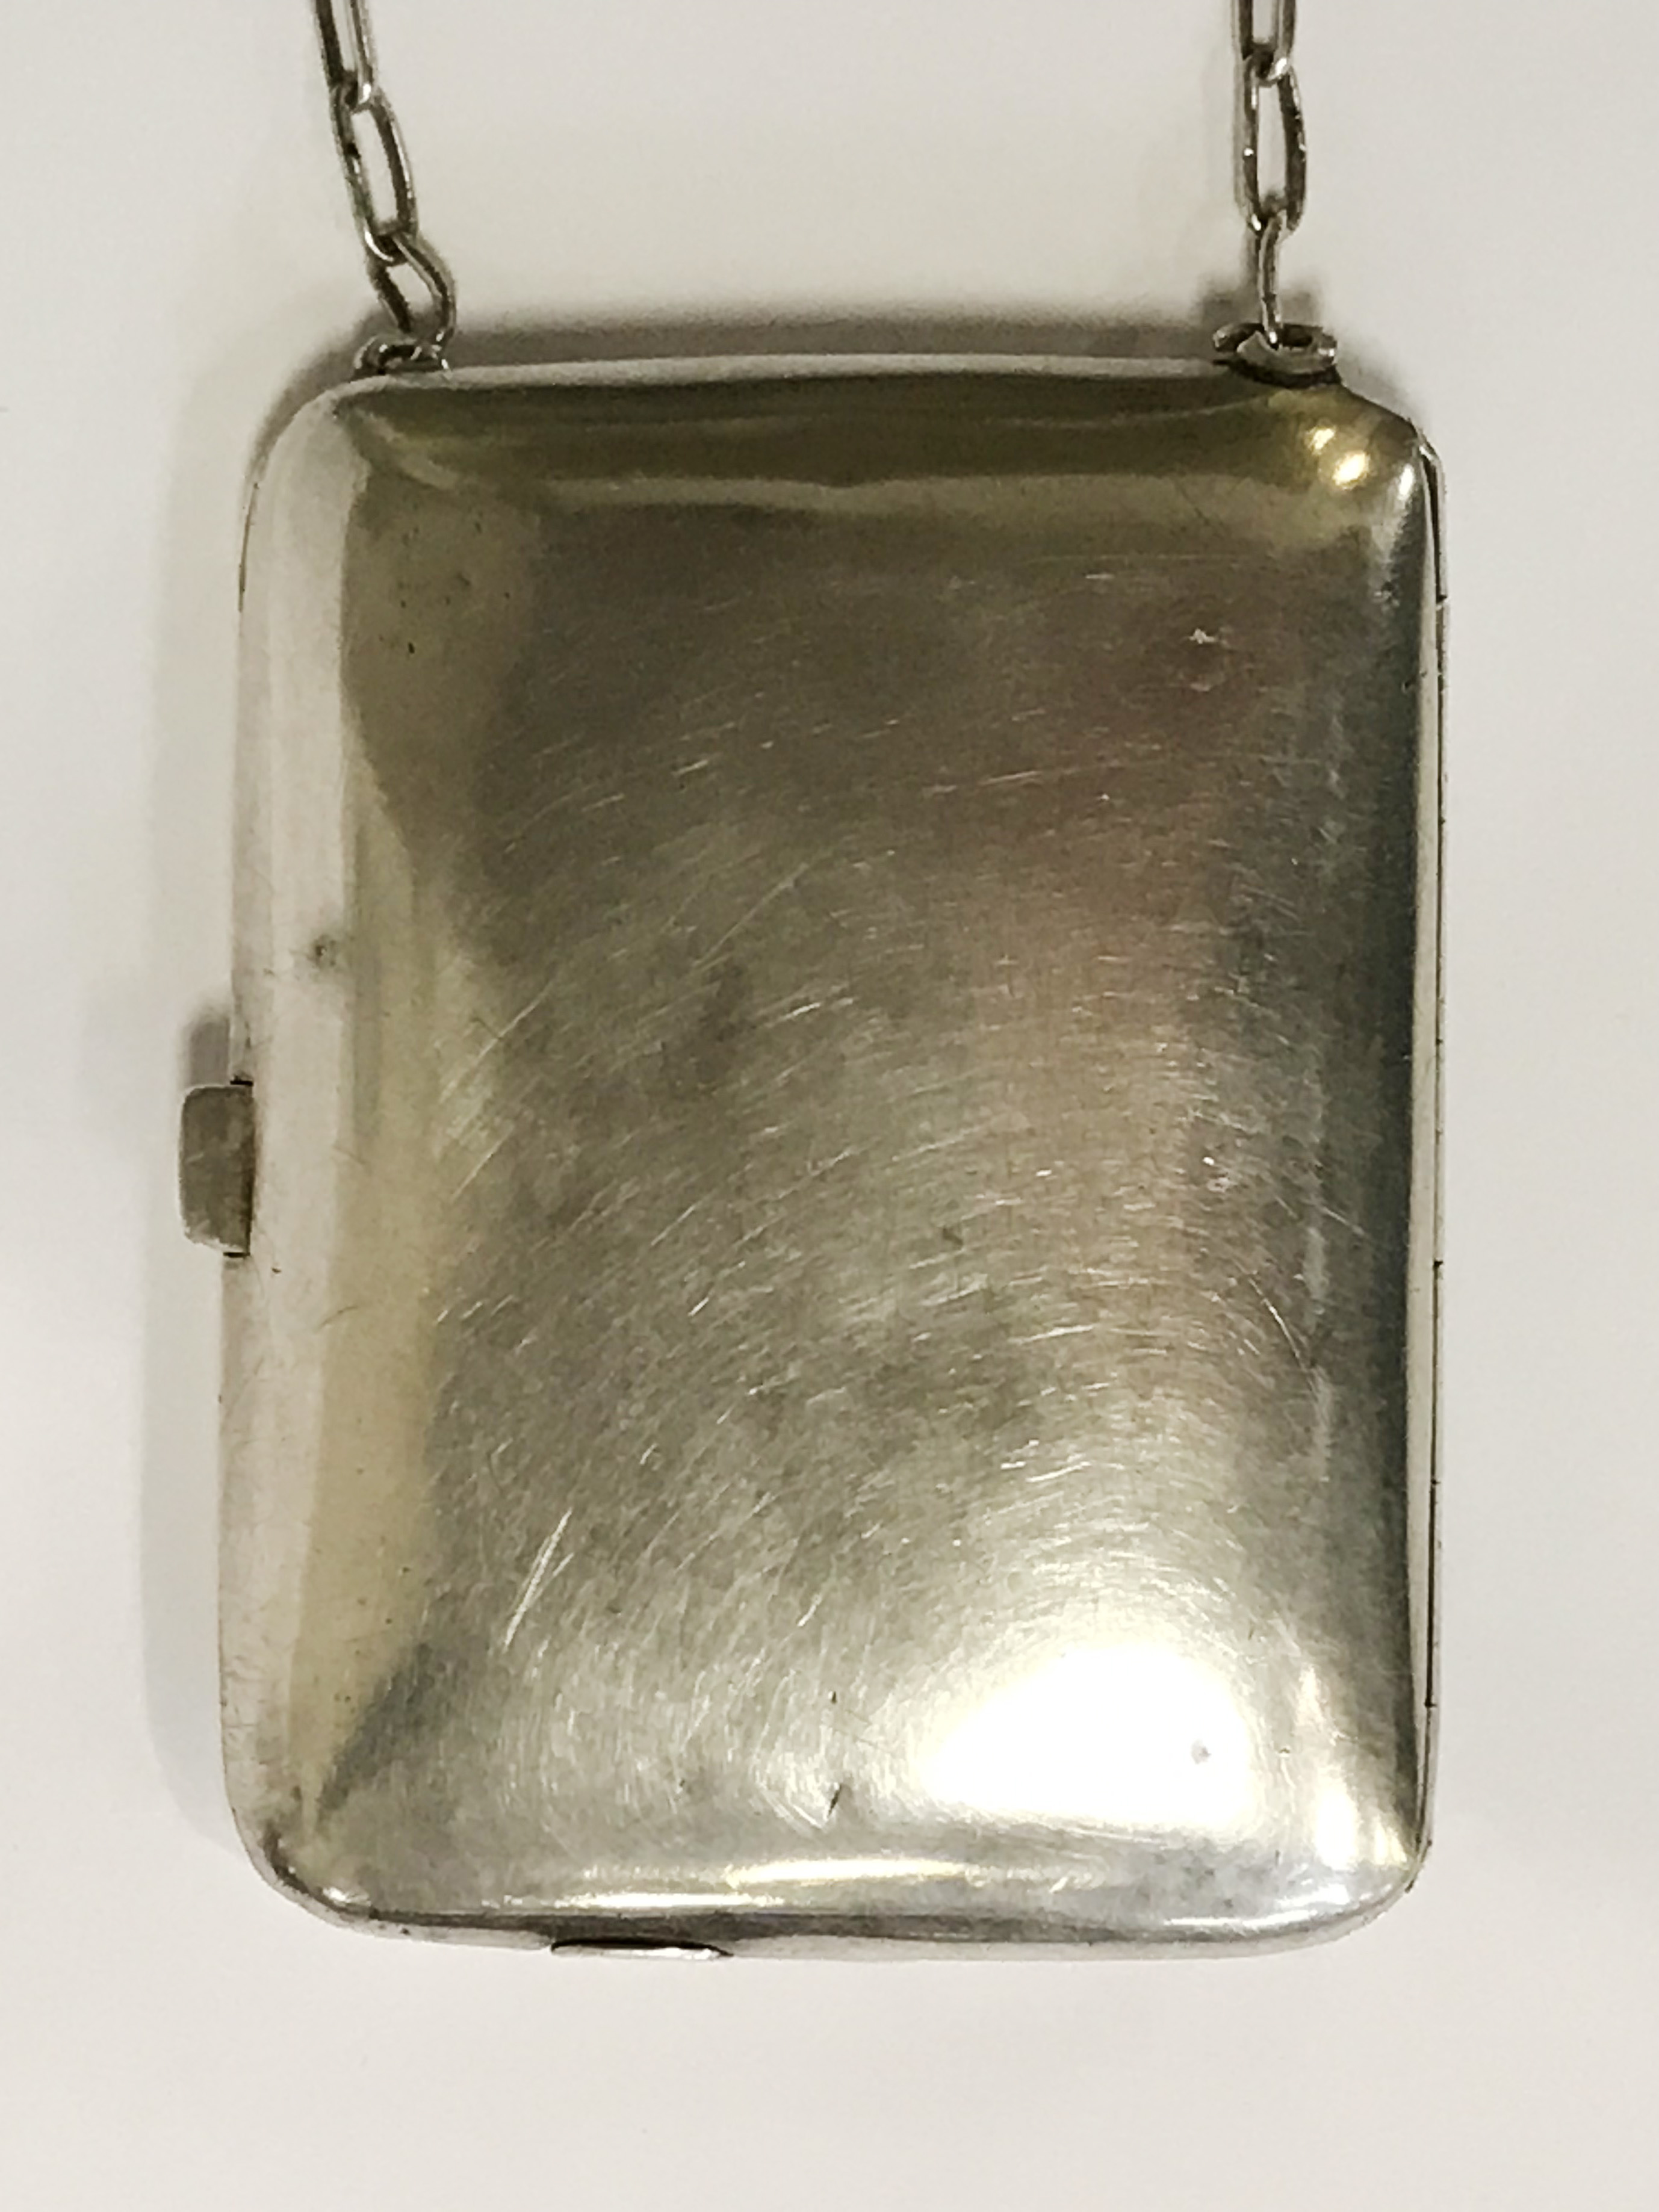 HM SILVER & GOLD INLAID COMPACT - 9CMS X 6.5CMS - Image 3 of 7